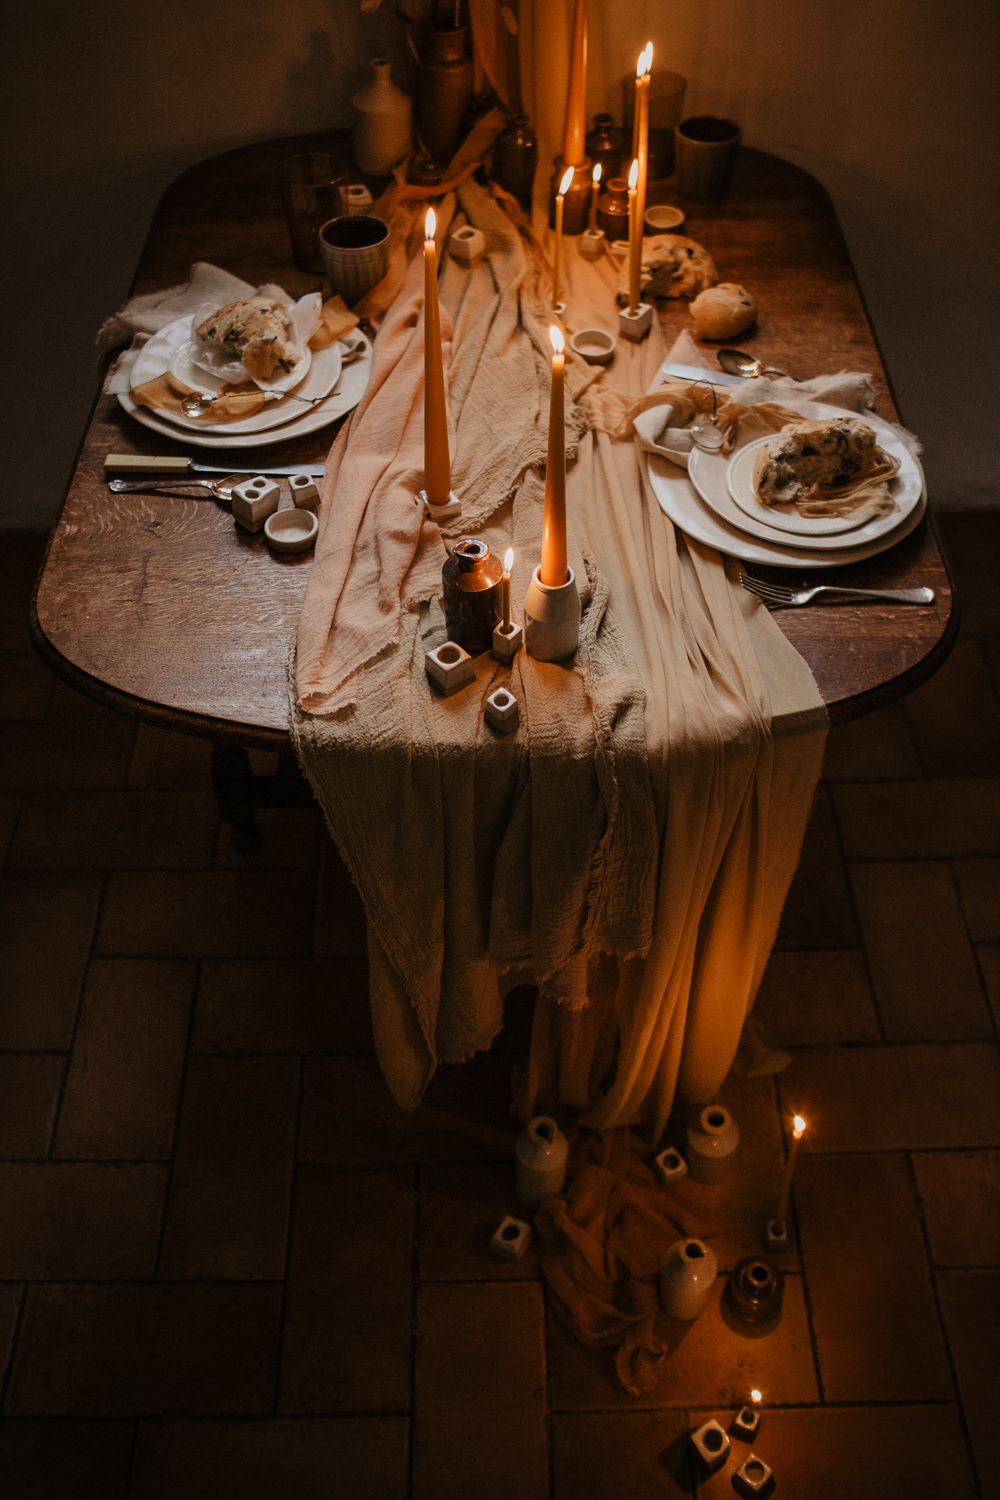 Table Tablescape Decor Decoration Candles Dried Flowers Grasses Sweetheart Table Earthenware Table Linen Silk Earthy Autumn Fall Elopement Wedding Ideas Oilvejoy Photography